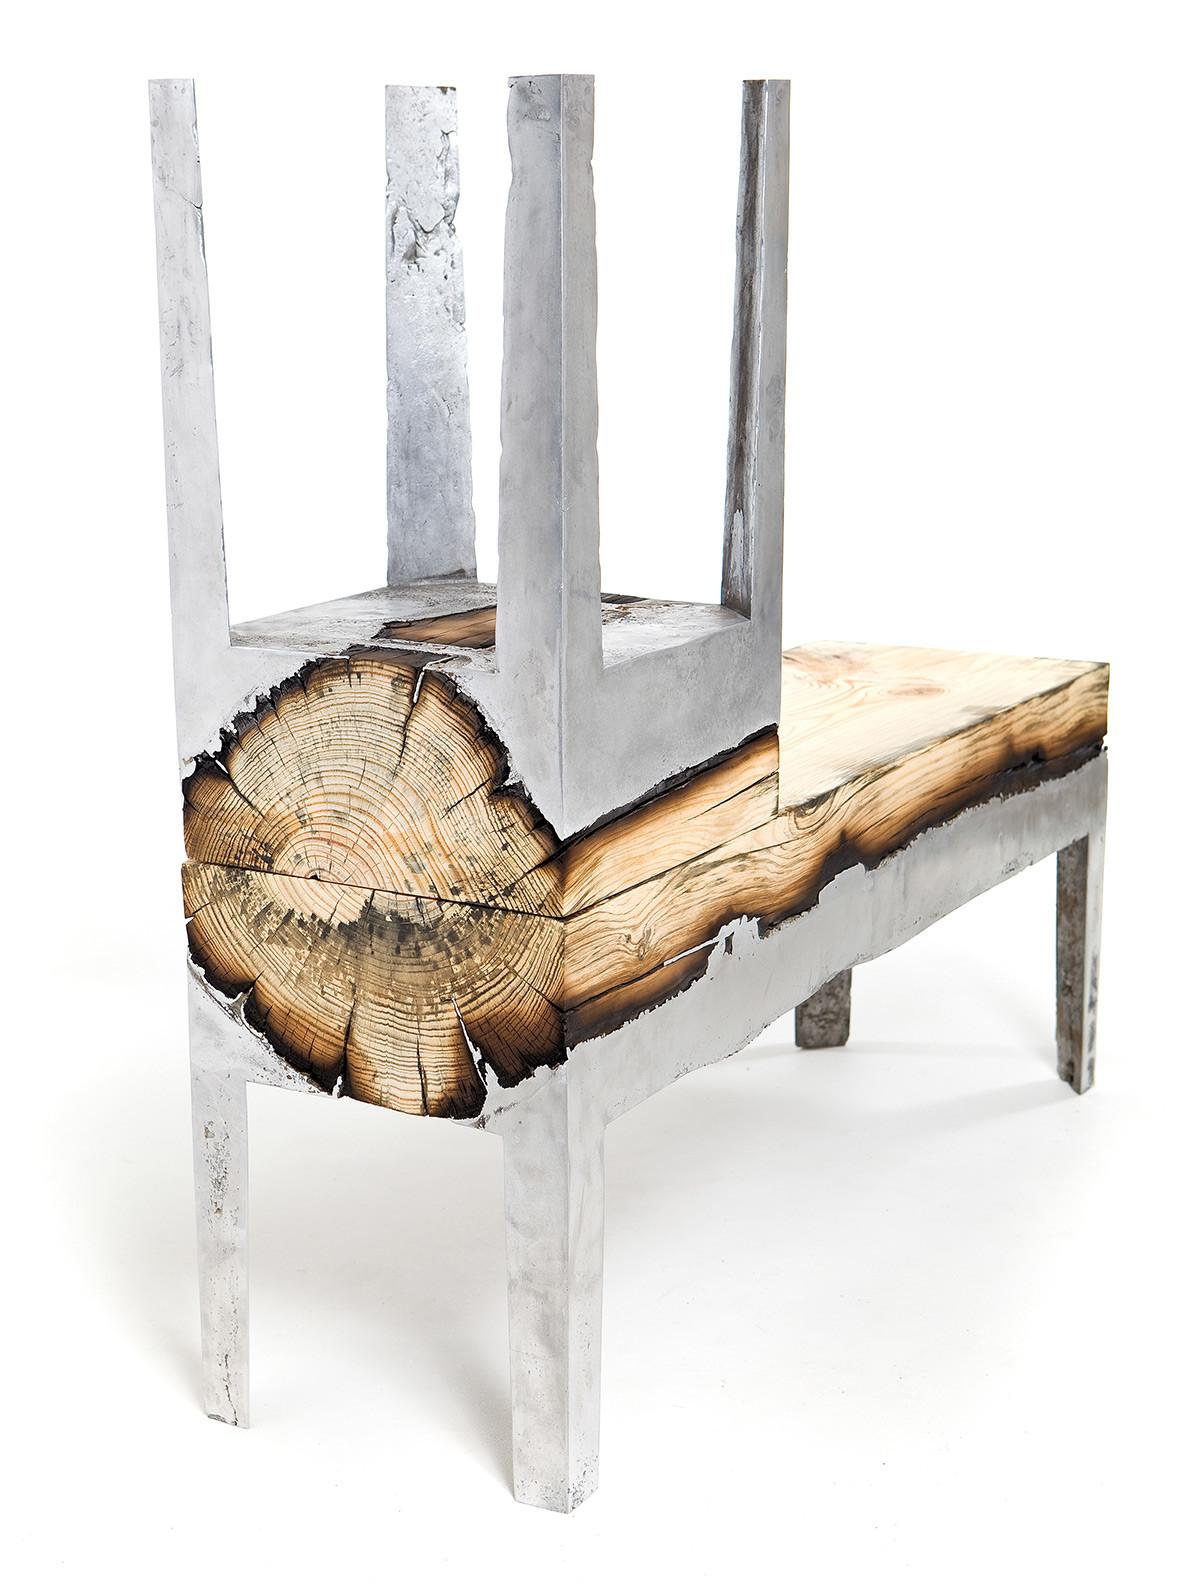 Designer Hilla Shamia Uses Cast Aluminum Tree Trunks